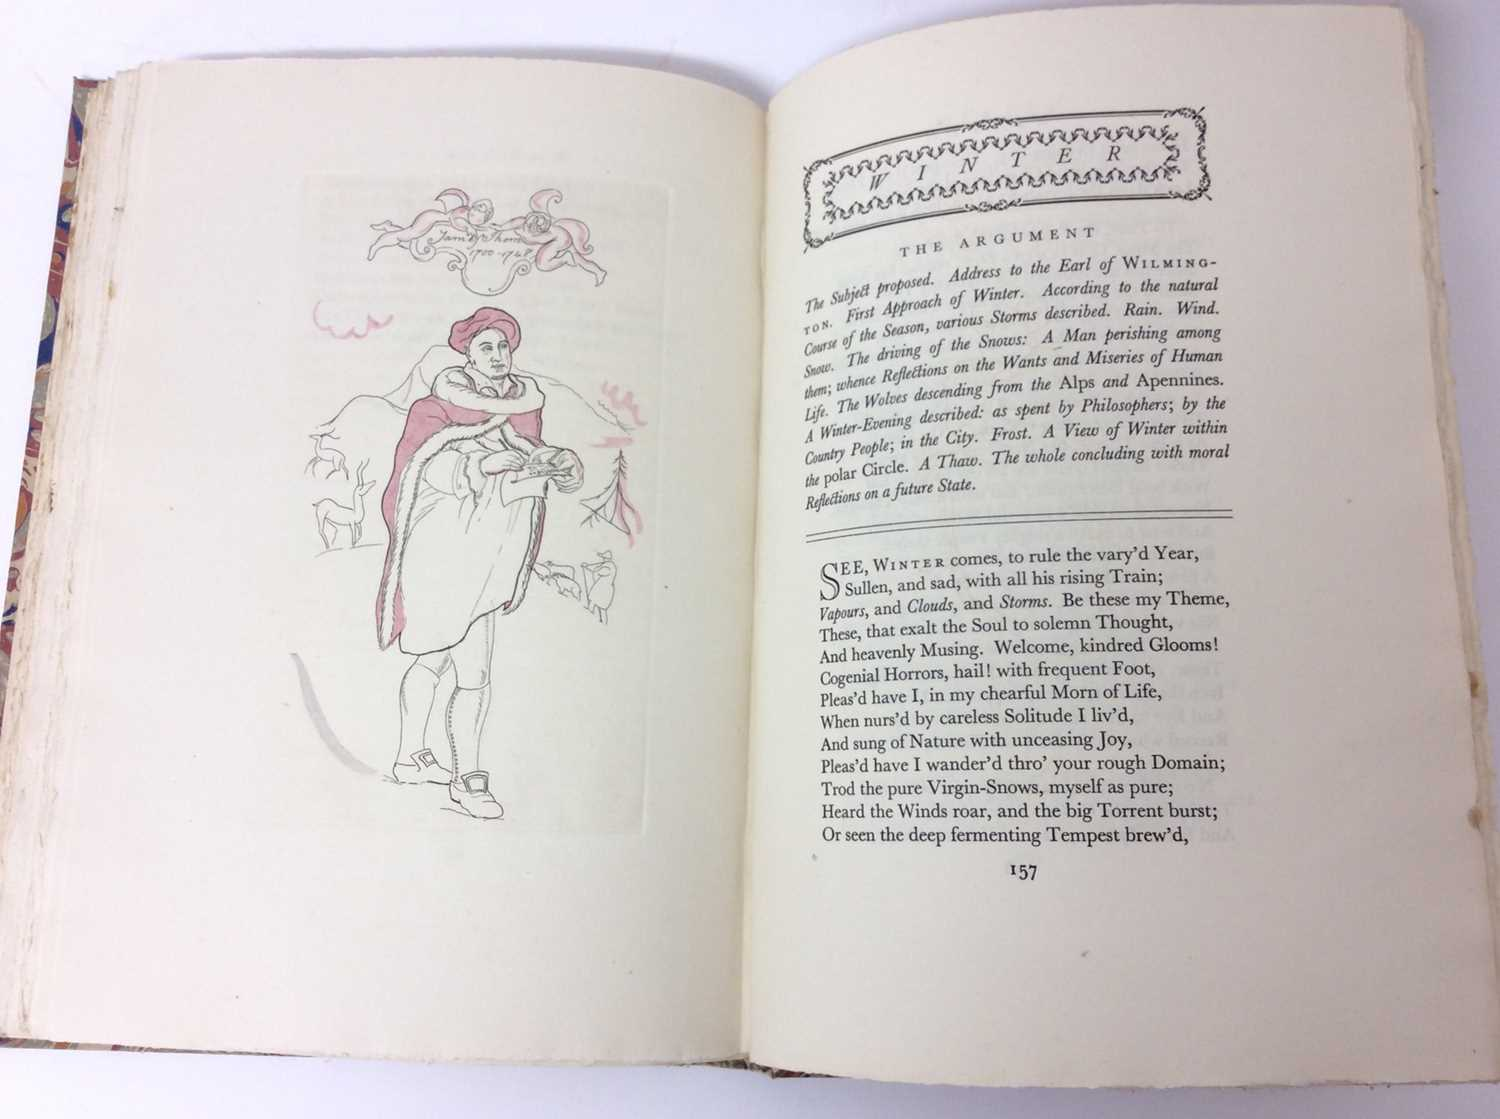 The Seasons by James Thomson, Nonesuch Press 1927, numbered 186 out of 1,500 copies, 1927 - Image 8 of 10